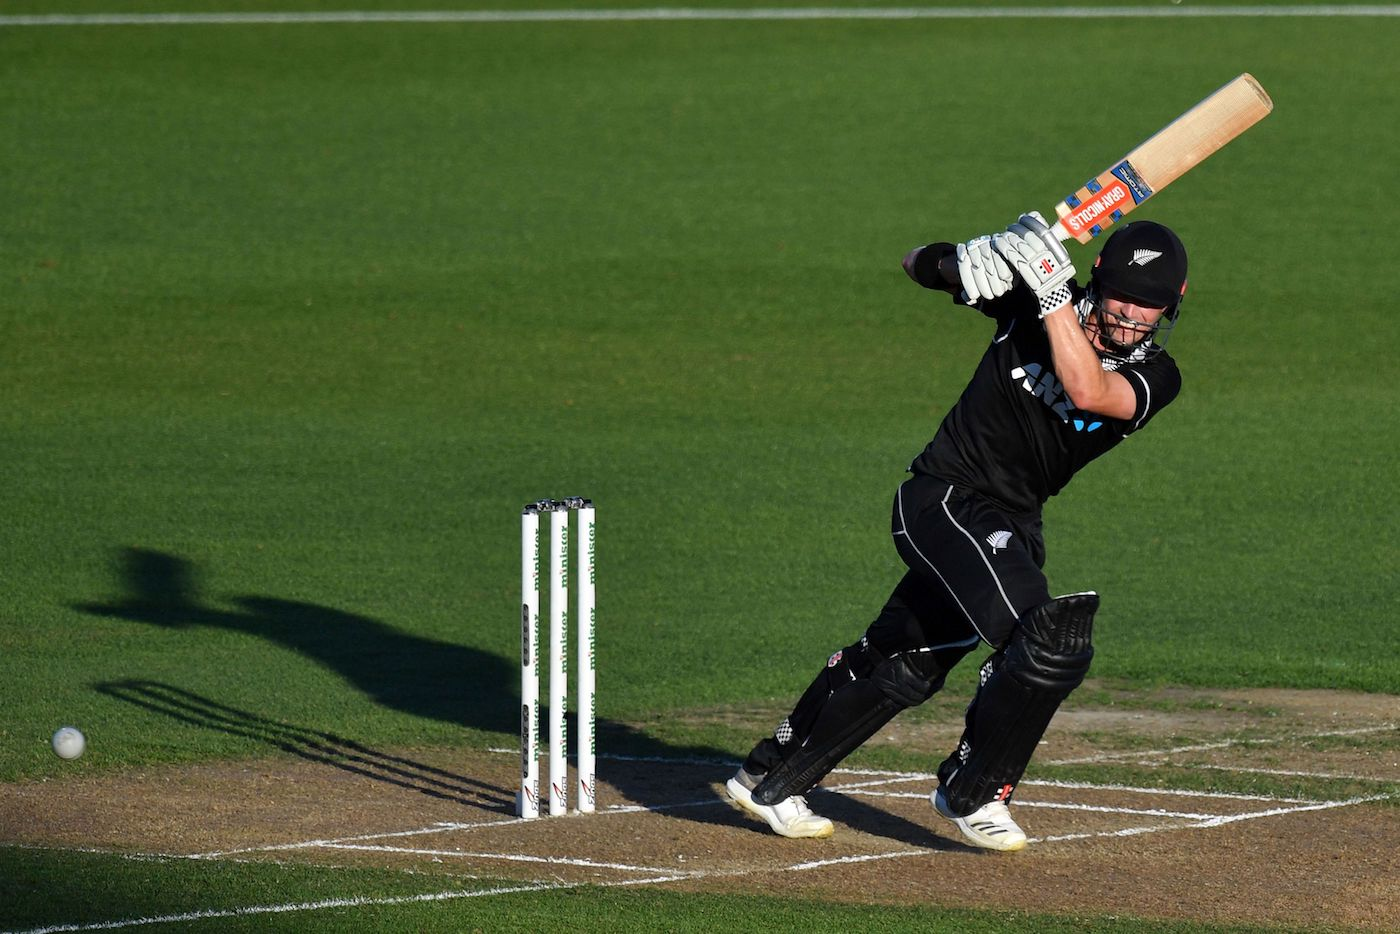 ICC World Cup 2019: Match 37, Australia vs New Zealand – New Zealand's Predicted Playing XI